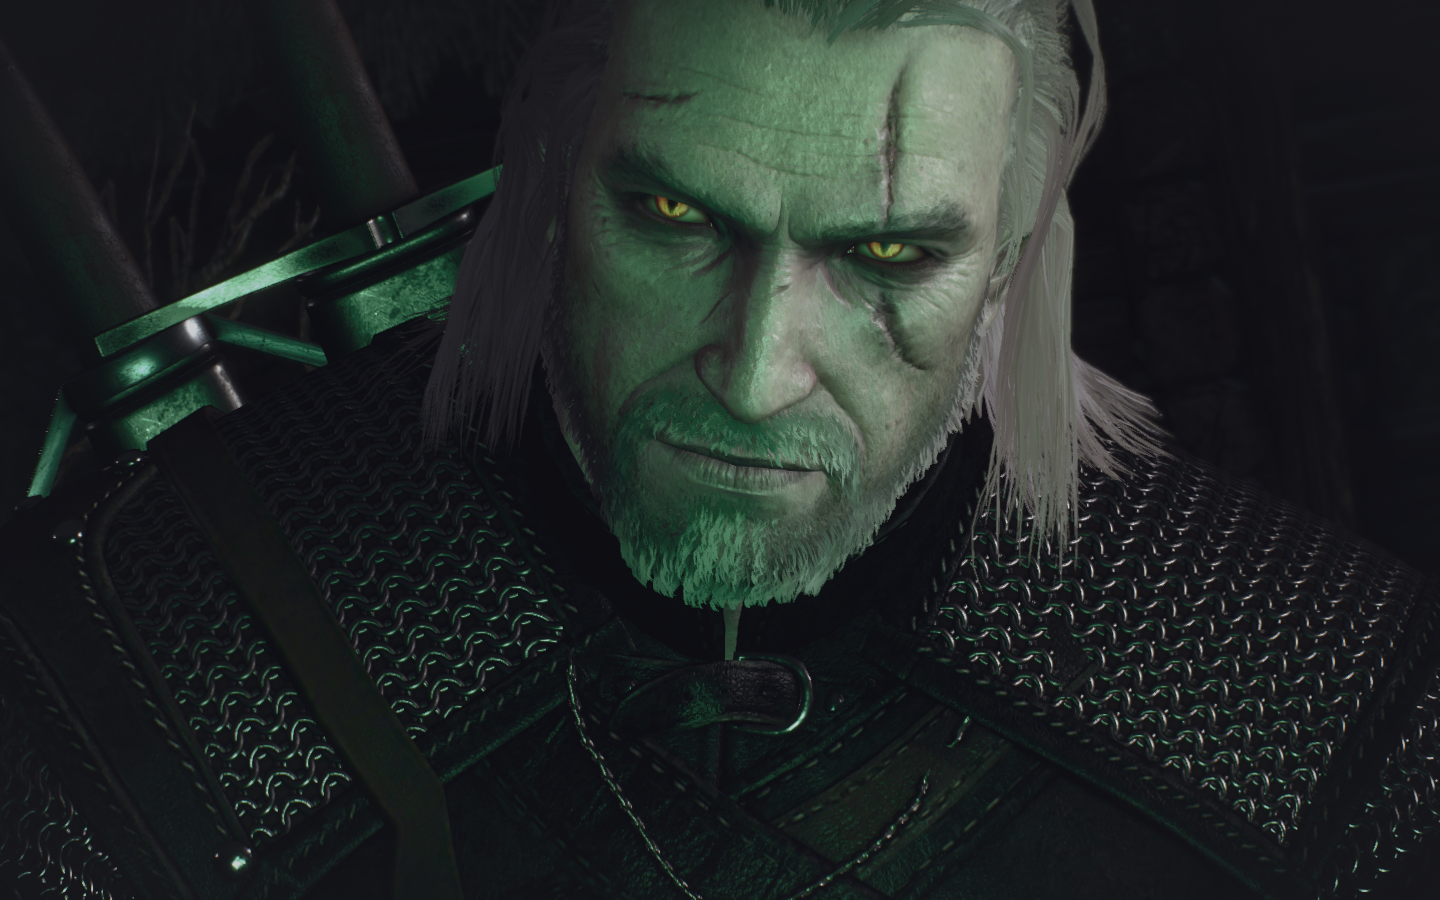 The Witcher 3 Screenshot 2017.12.25 - 03.37.51.93.png - Witcher 3: Wild Hunt, the